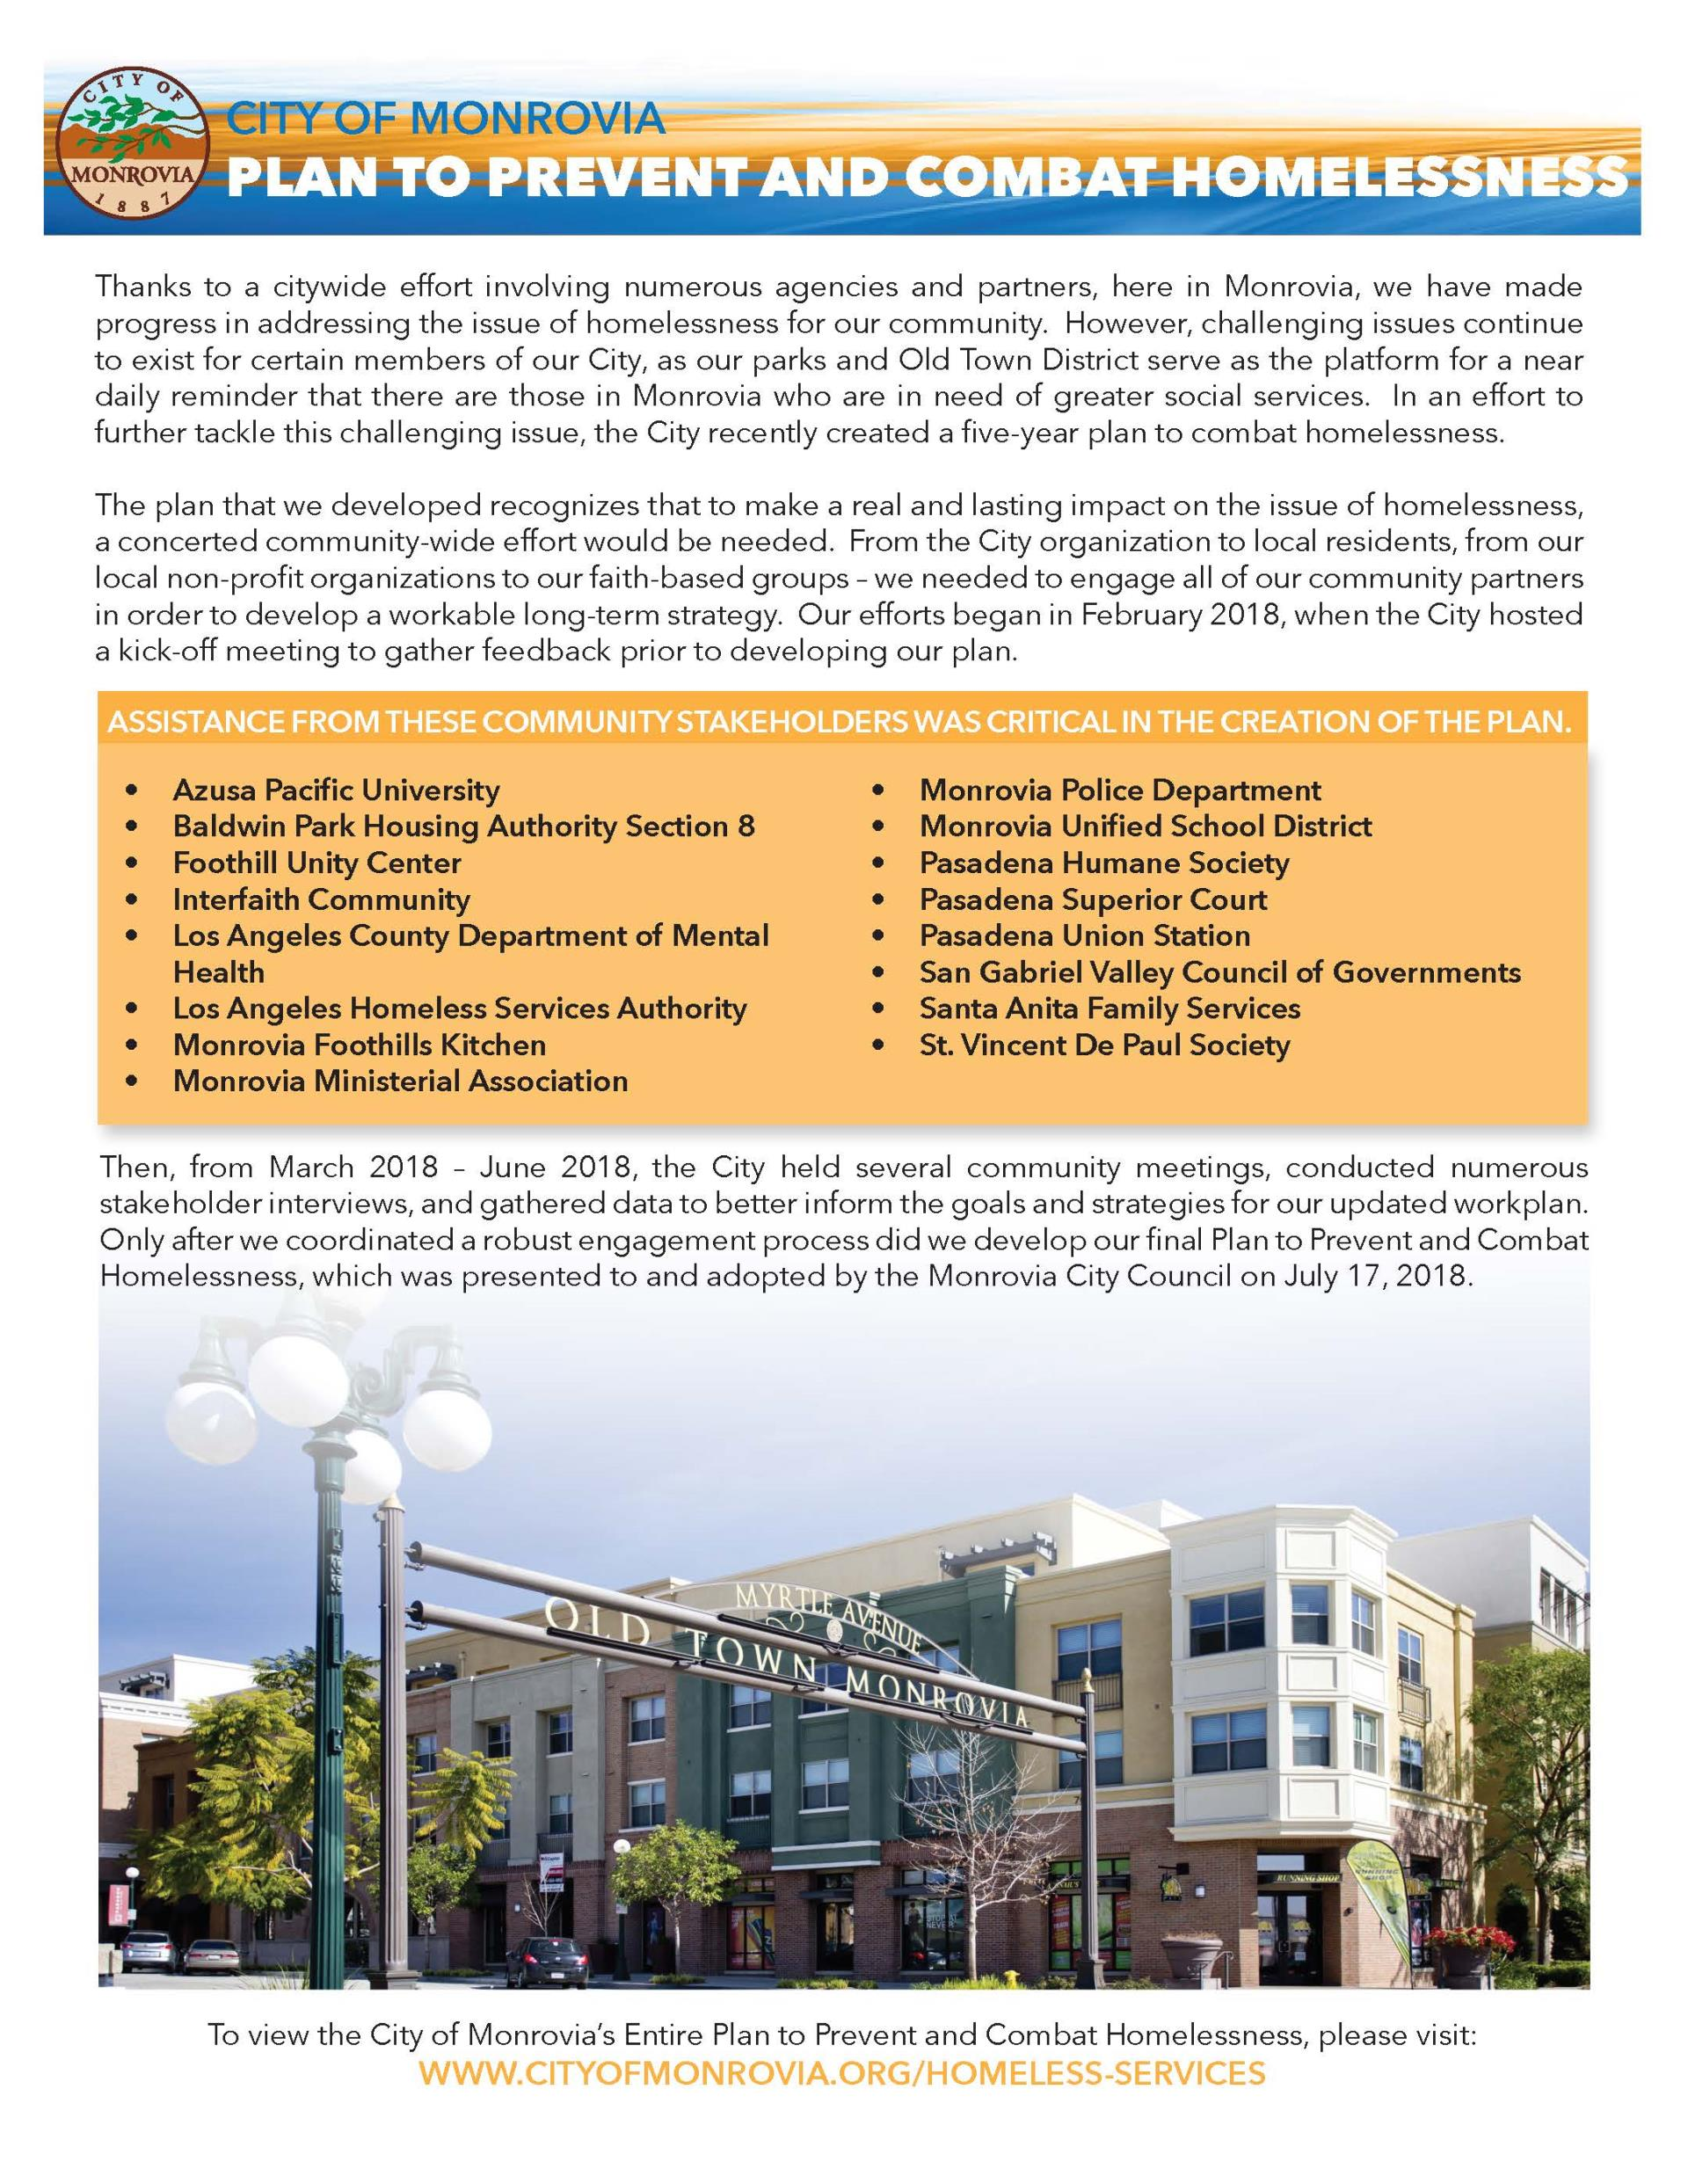 Homeless Plan Executive Summary Background Information